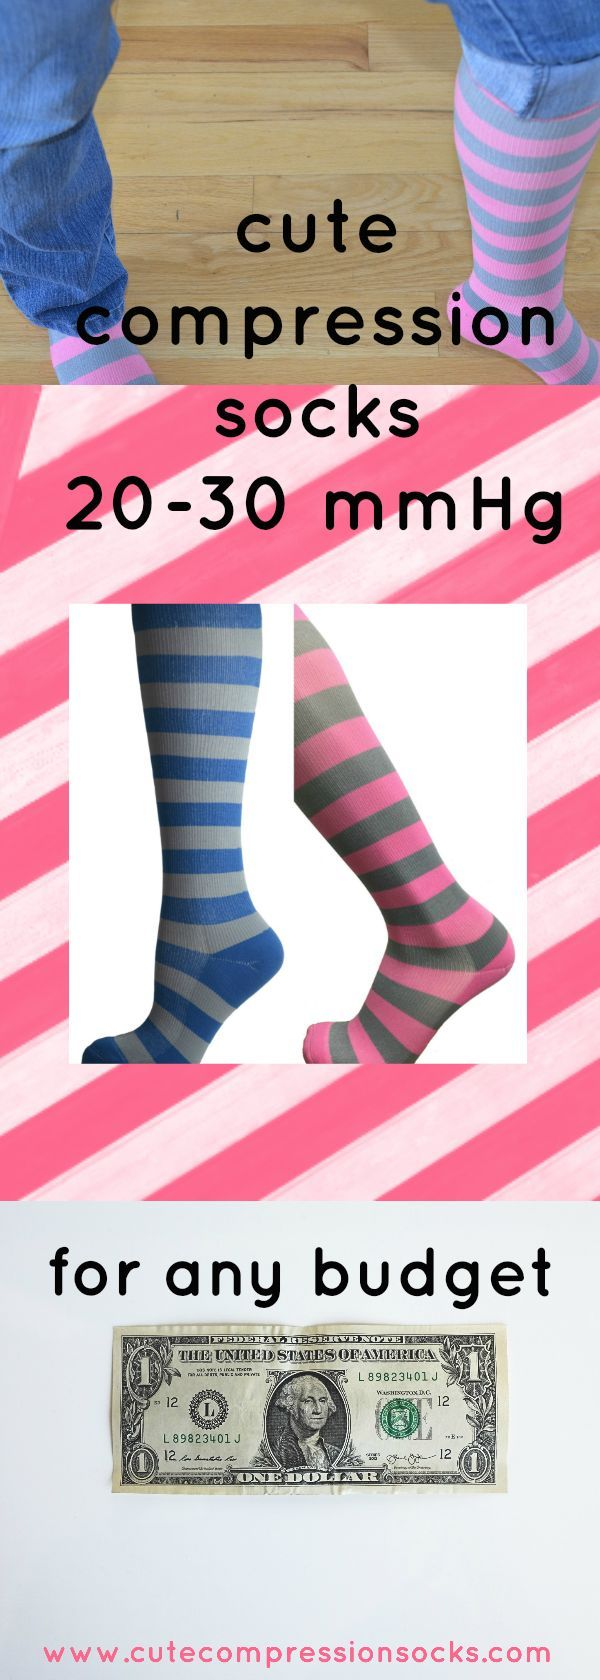 Compression socks weren't always a fashion statement - they're usually extra support for POTS, RA, maternity, or nurses. But now, cute compression stockings 20-30 mmHg are also fun and comfortable to wear. #fashion #socks #compressionsocks